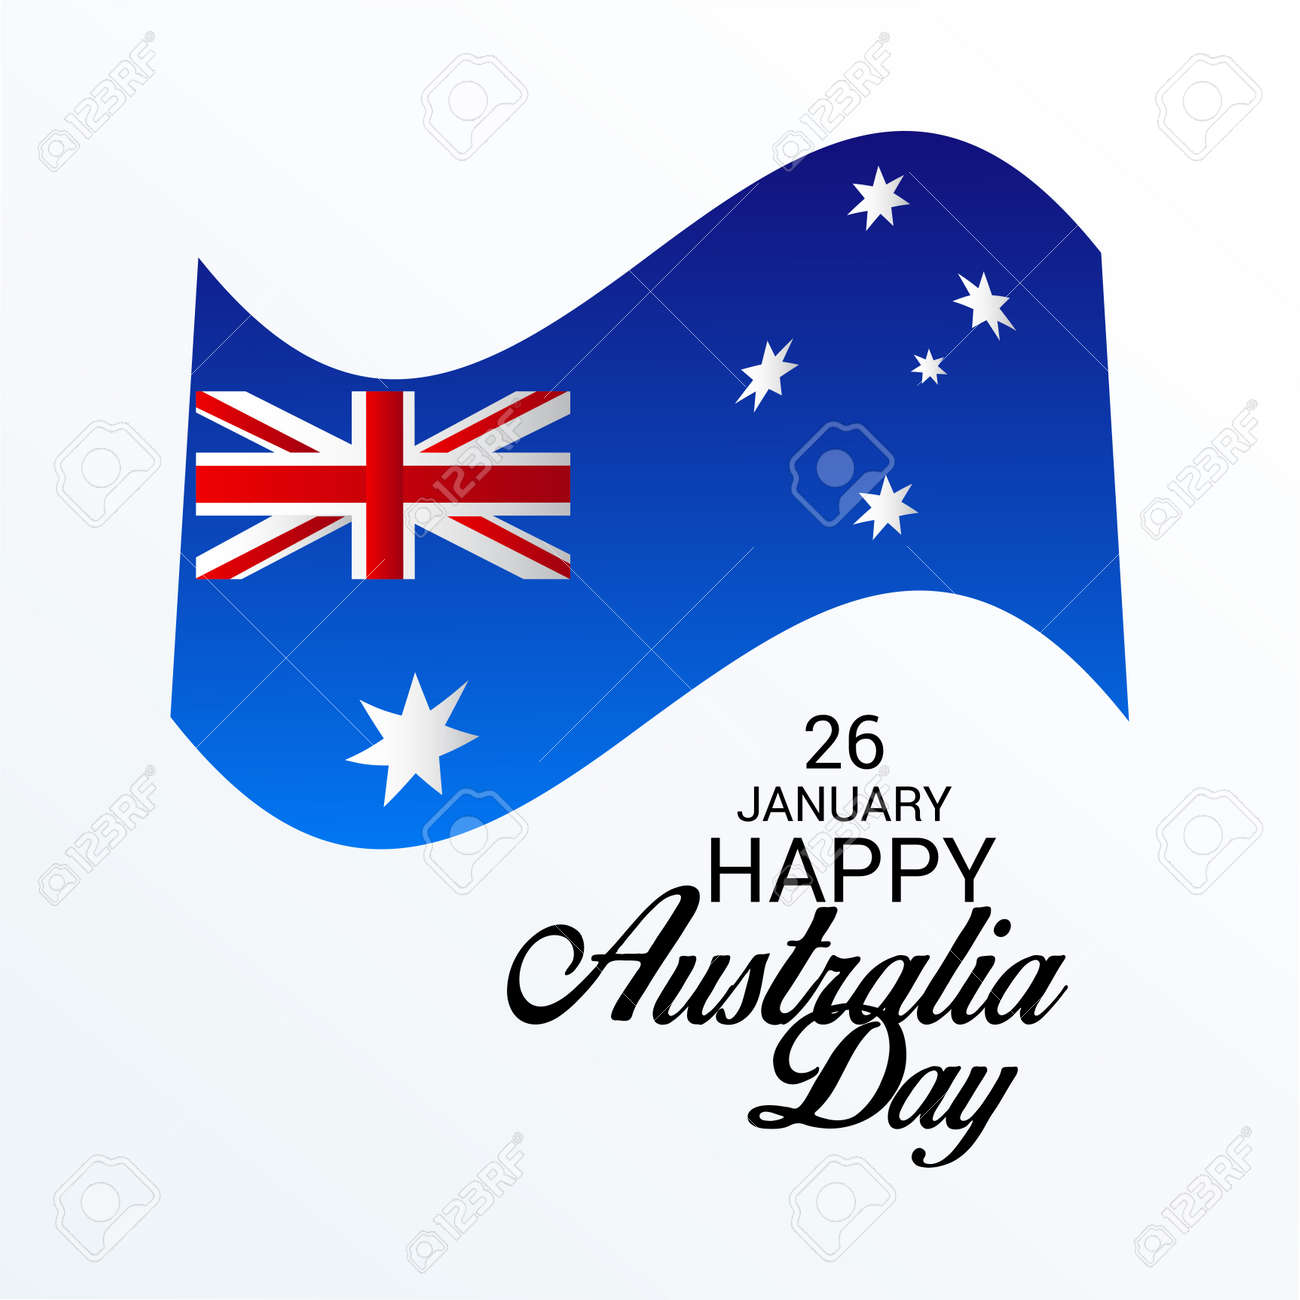 Happy australia day greeting card with australian flag design happy australia day greeting card with australian flag design stock vector 94132458 m4hsunfo